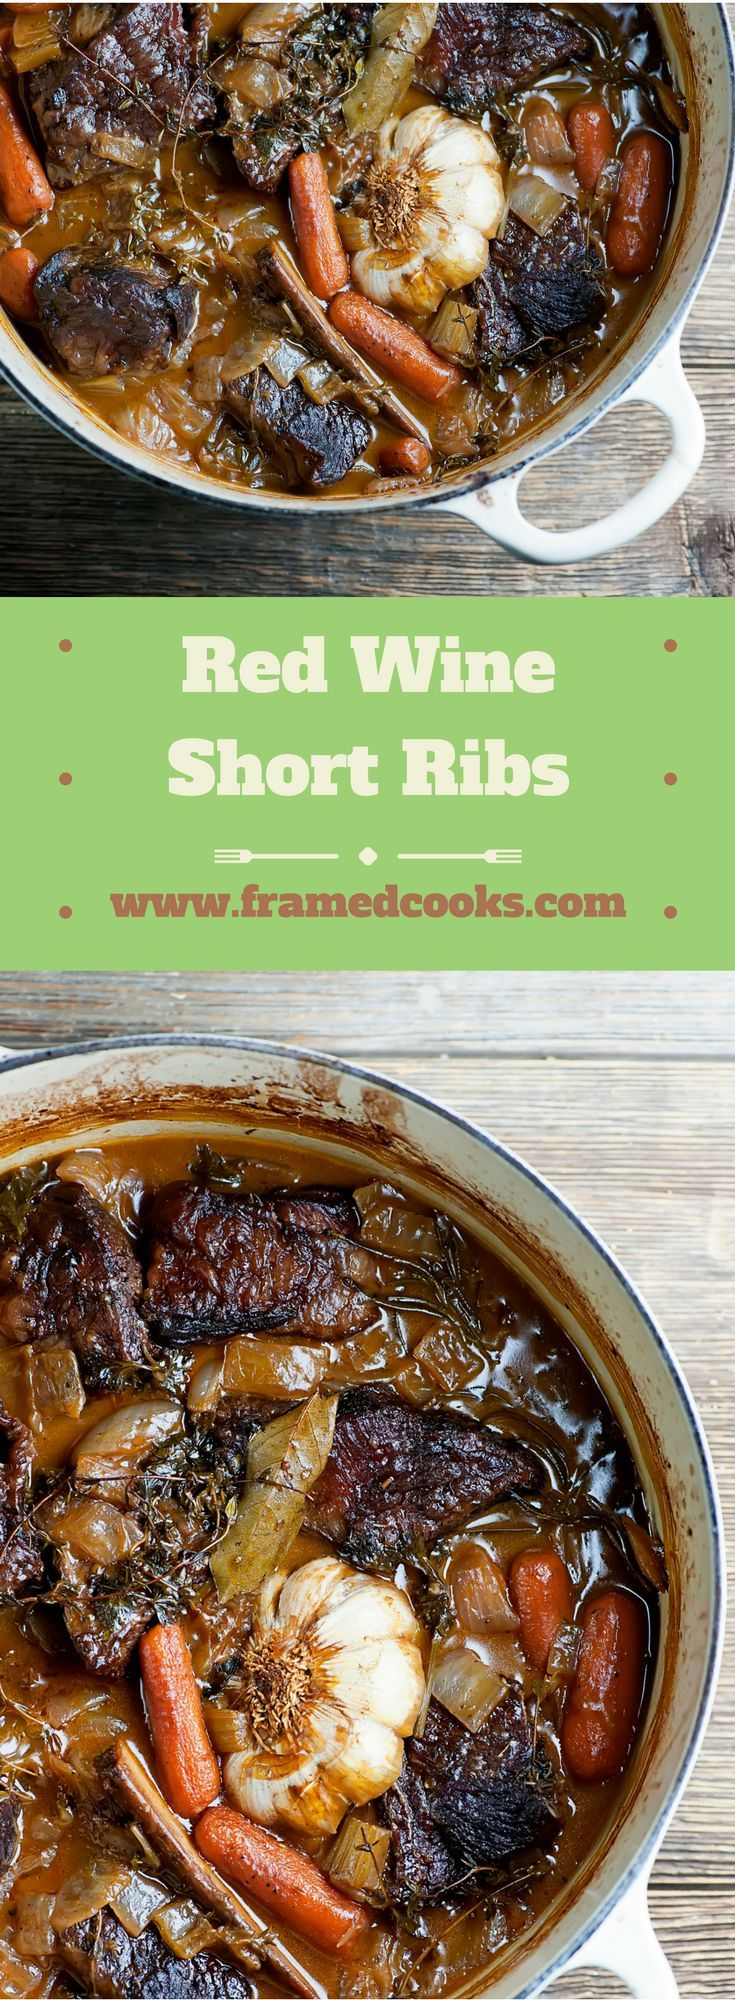 This easy recipe for red wine short ribs is the perfect comfort food for a lazy fall weekend!